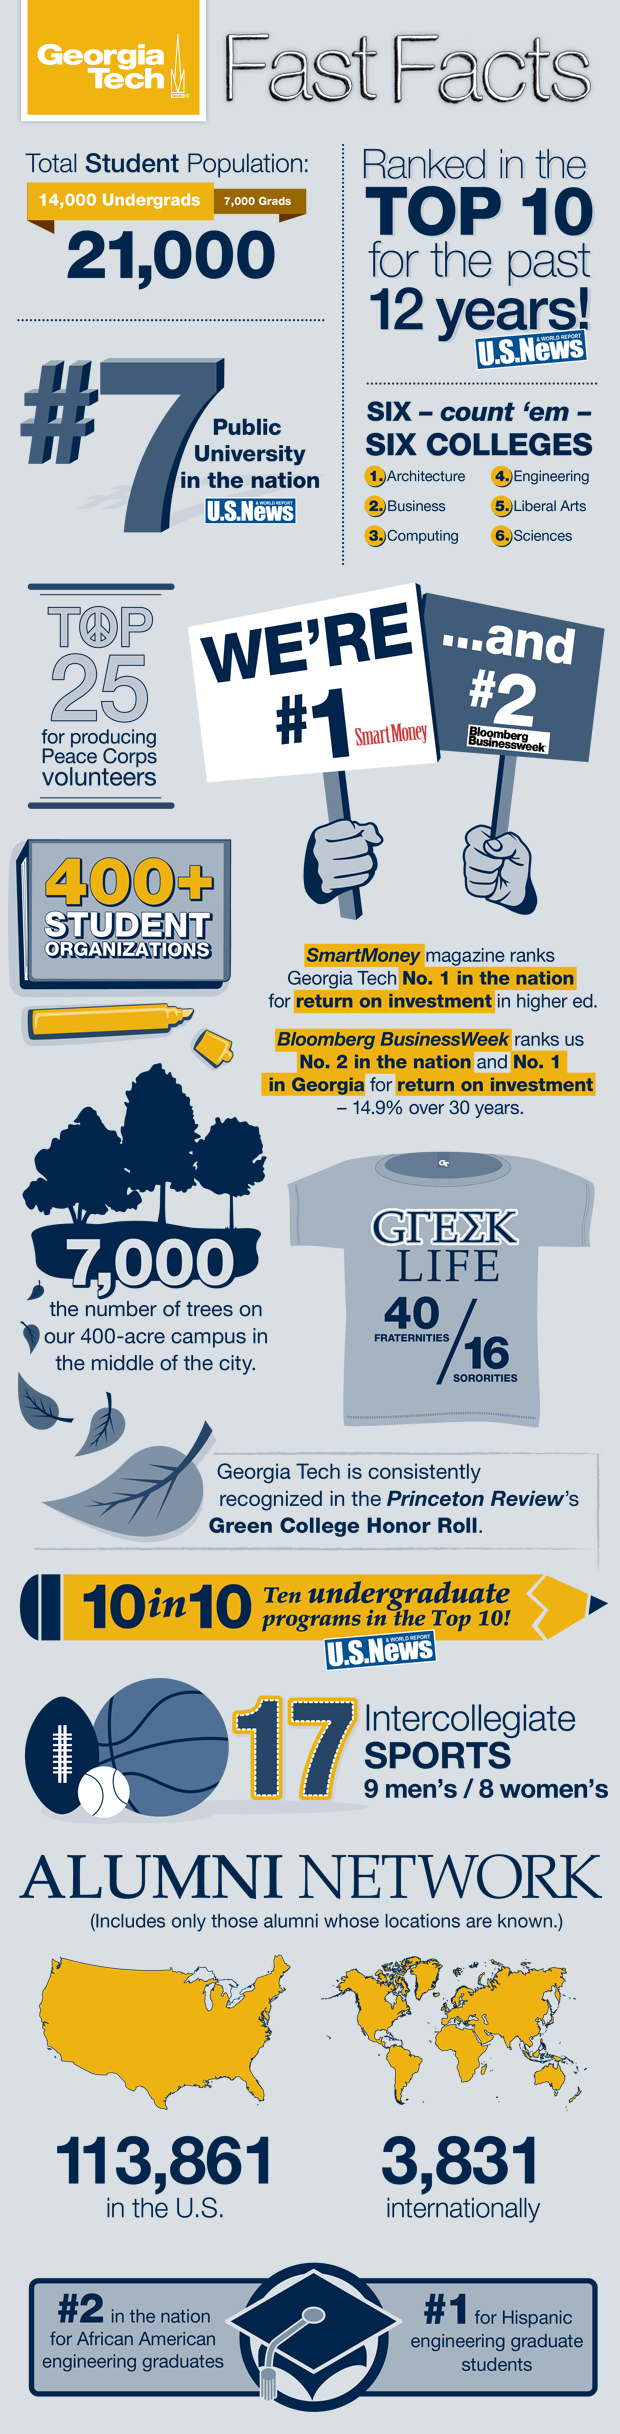 Tech Fast Facts Infographic. Nice showcase of